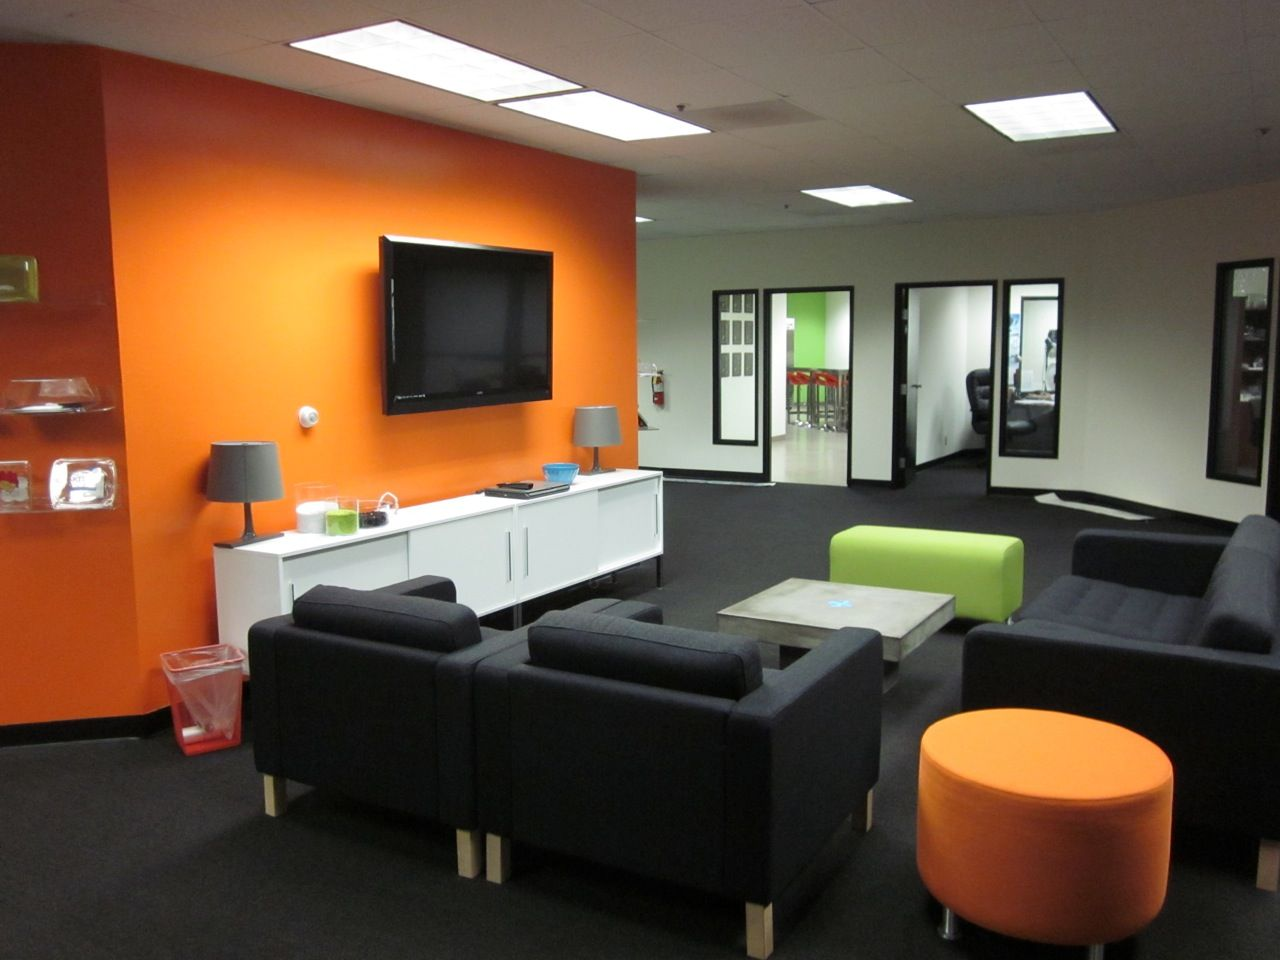 Commercial Office Relocation Using Mostly Ikea Furnishings And Telephone Line Wiring Group Picture Image By Tag Keywordpictures Orange Lime Green Accents Karlstad Sofa W Gray Tufted Felt Torsby White Lacquer